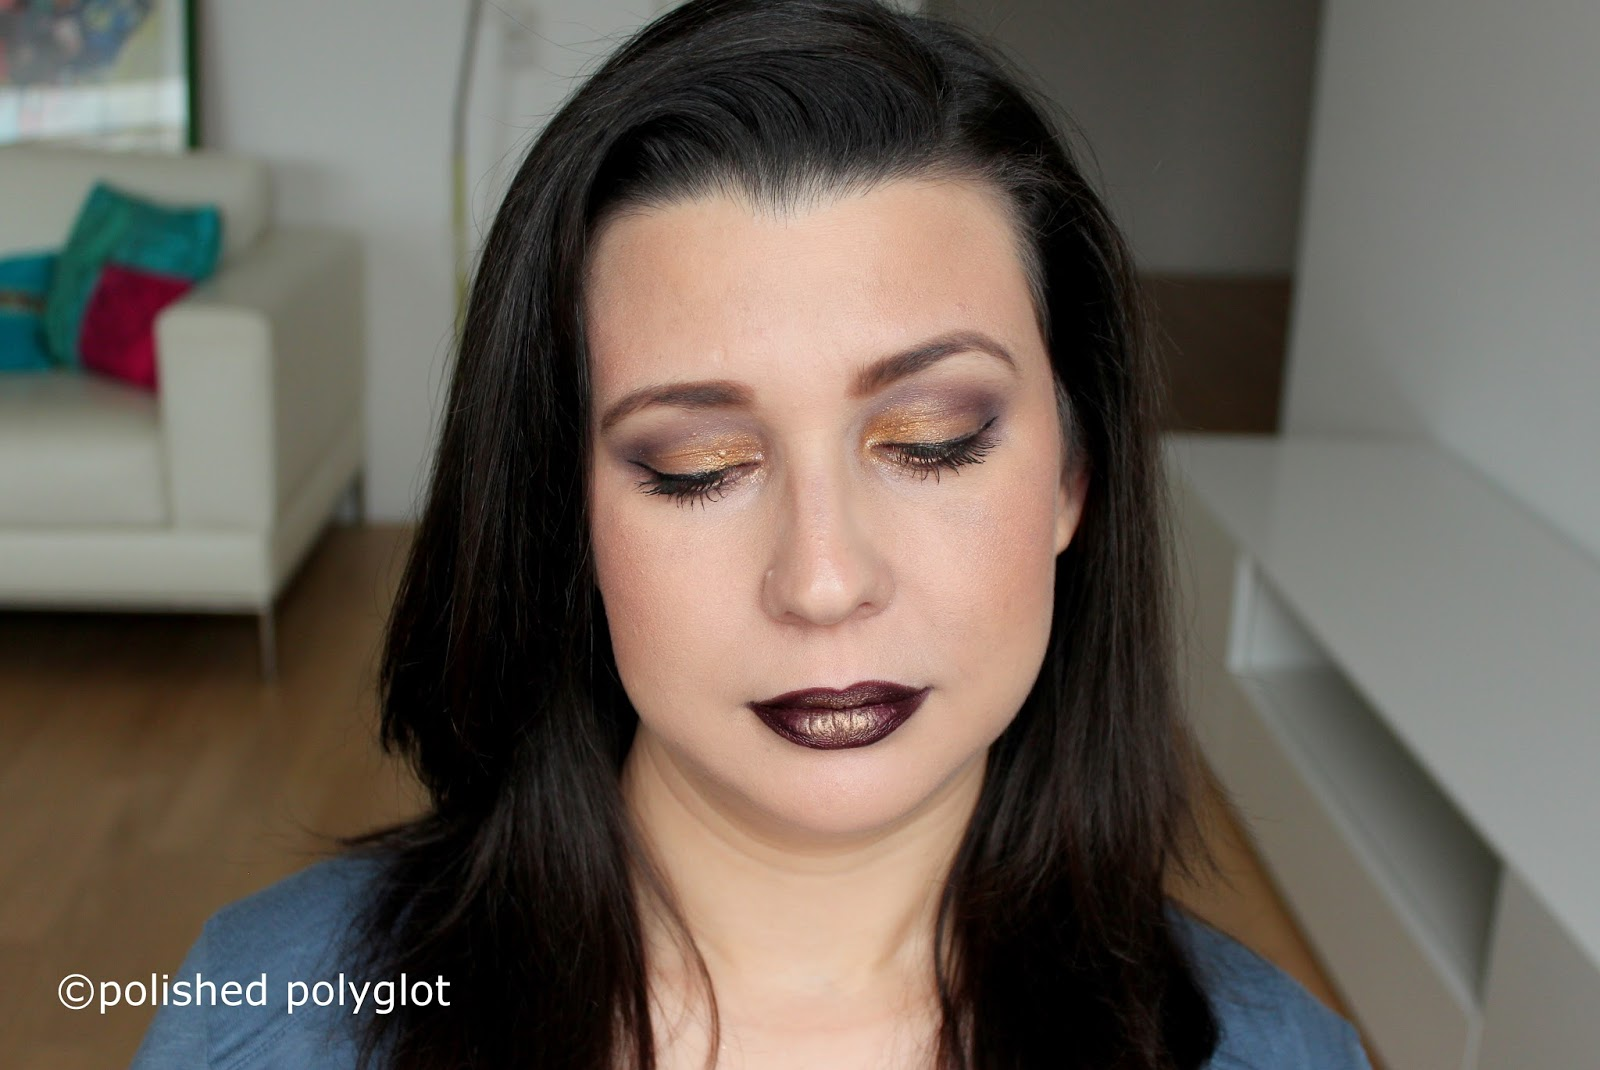 Applique Exterieur Jumbo Makeup Look In Tyrian Purple And Gold Glitter Monday